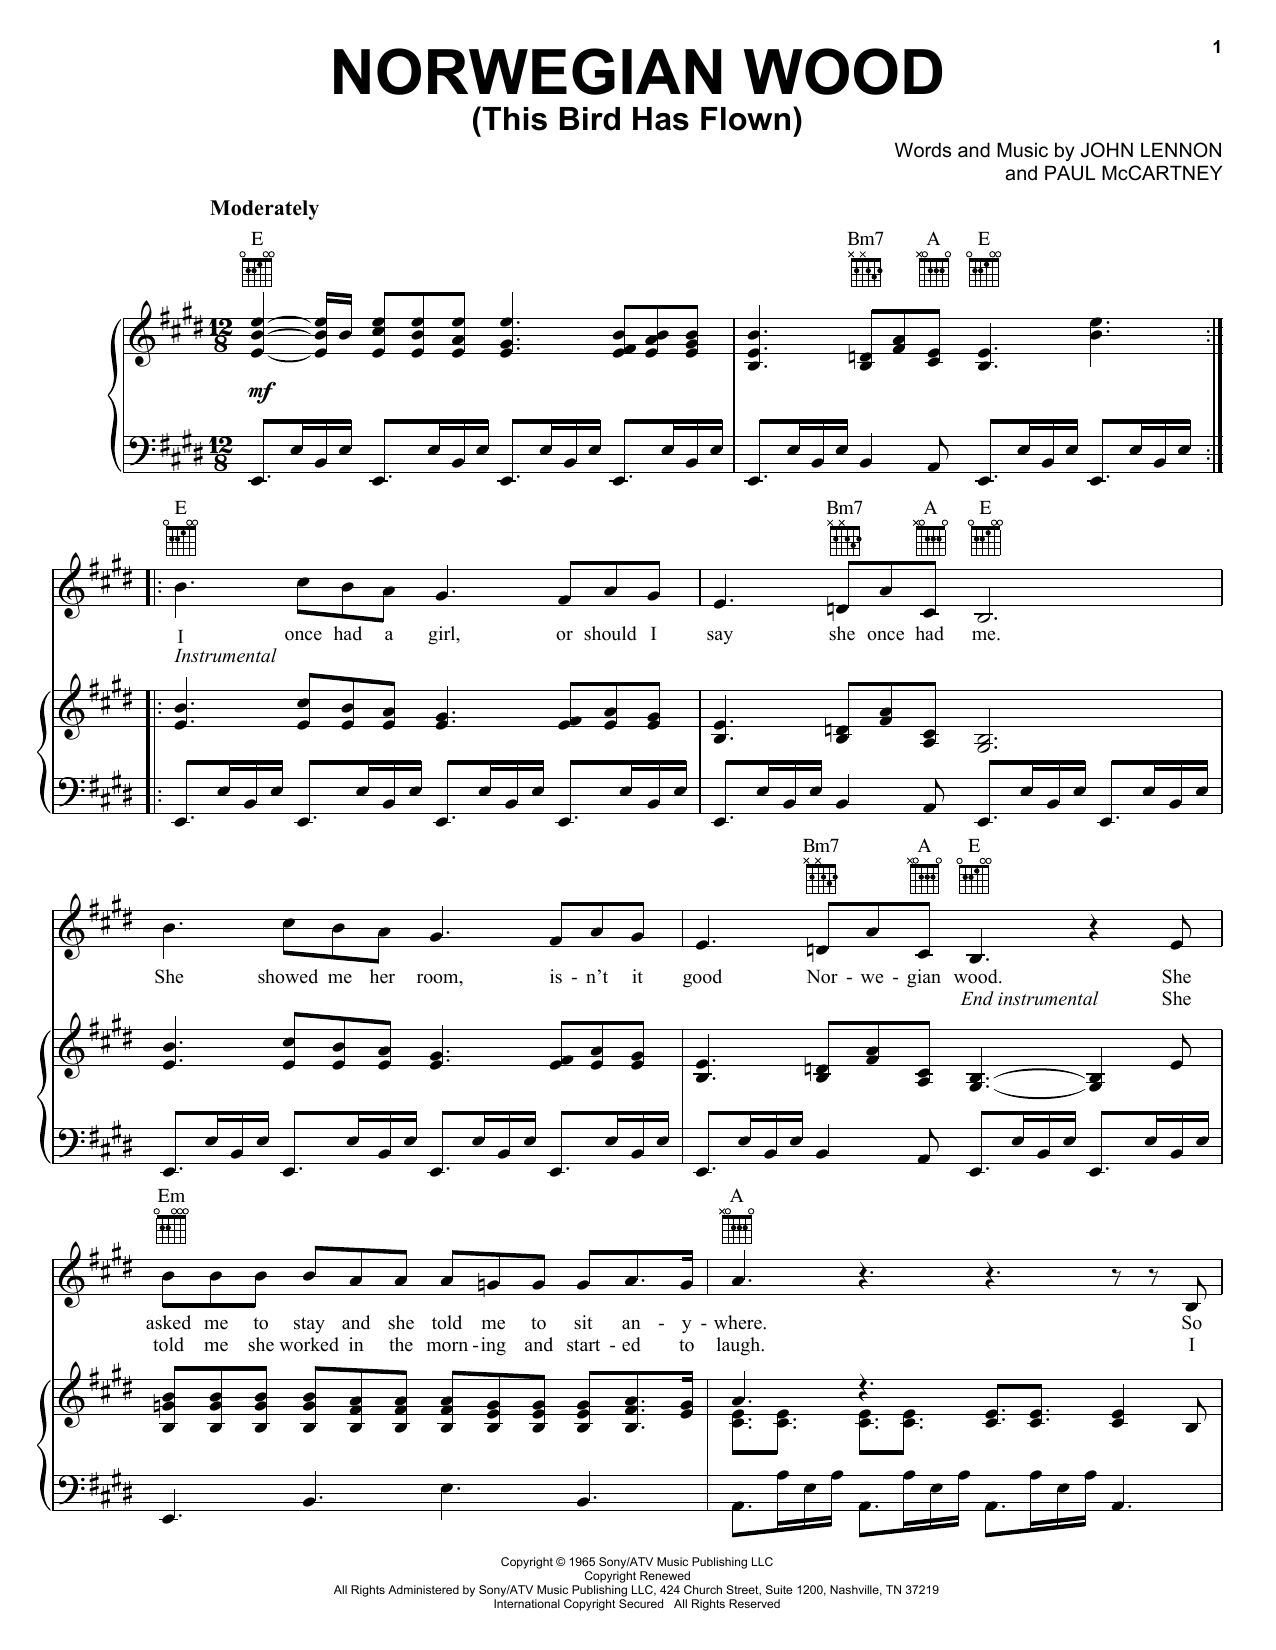 The Beatles Norwegian Wood (This Bird Has Flown) sheet music notes printable PDF score